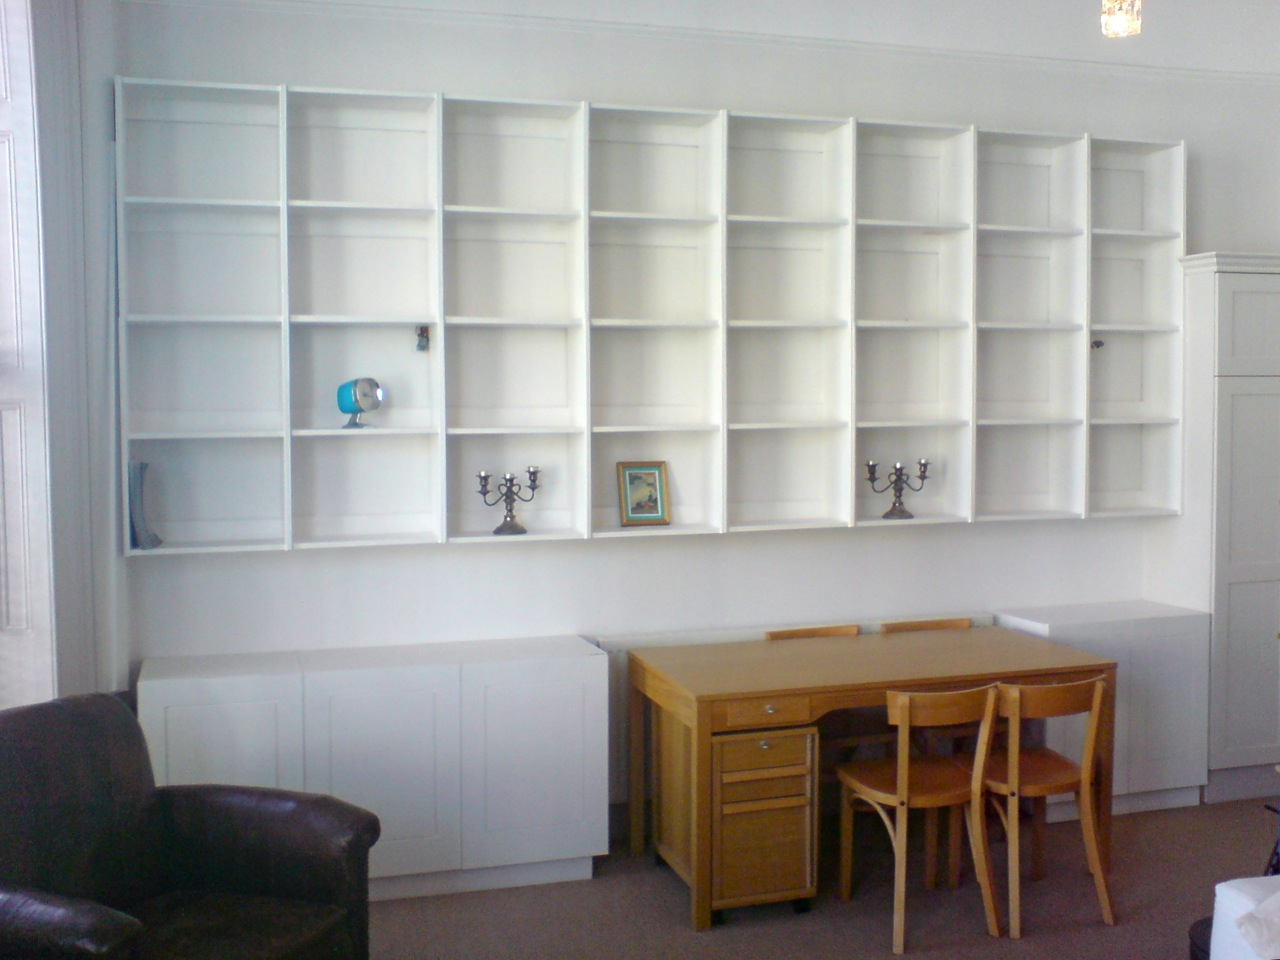 October 29 2009 White Shelving Cabinets By Rich In Cabinets Shelving